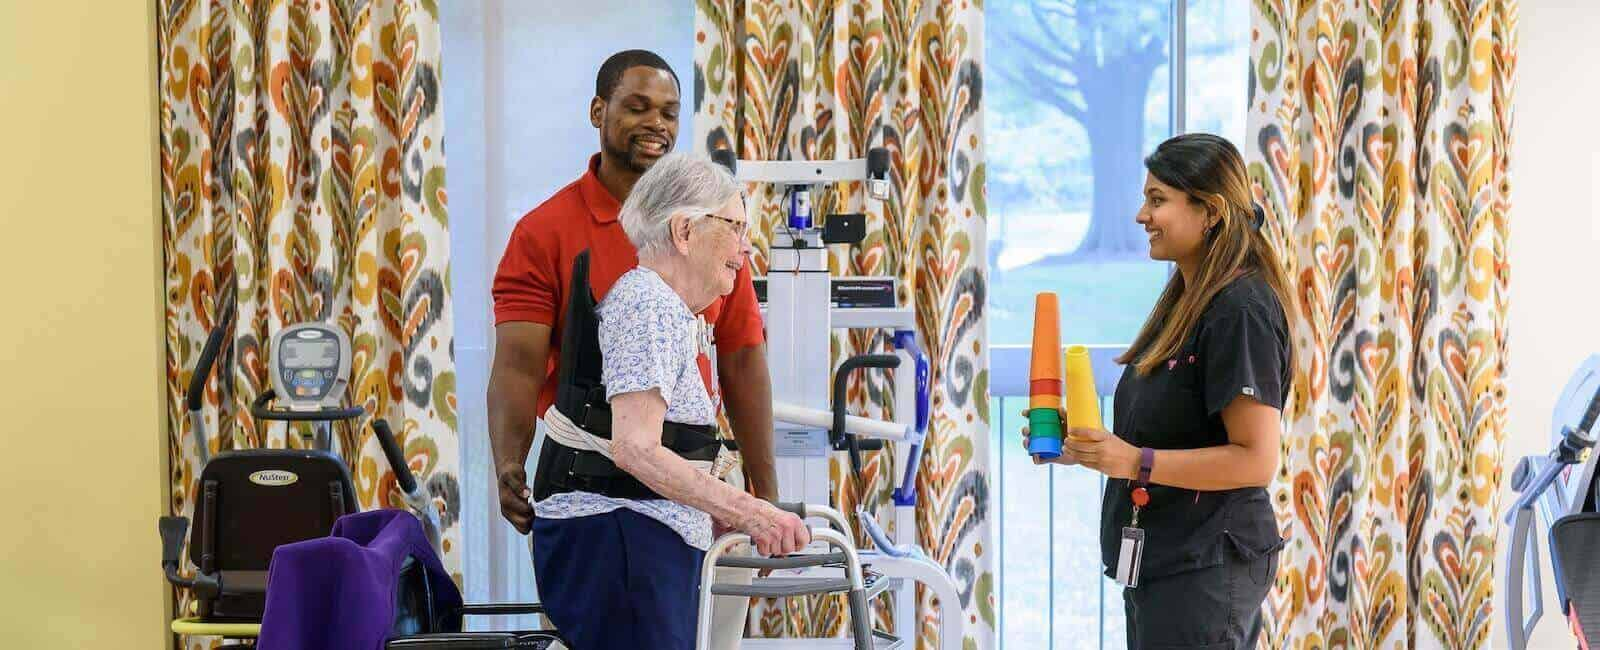 Stroke recovery patient doing physical therapy